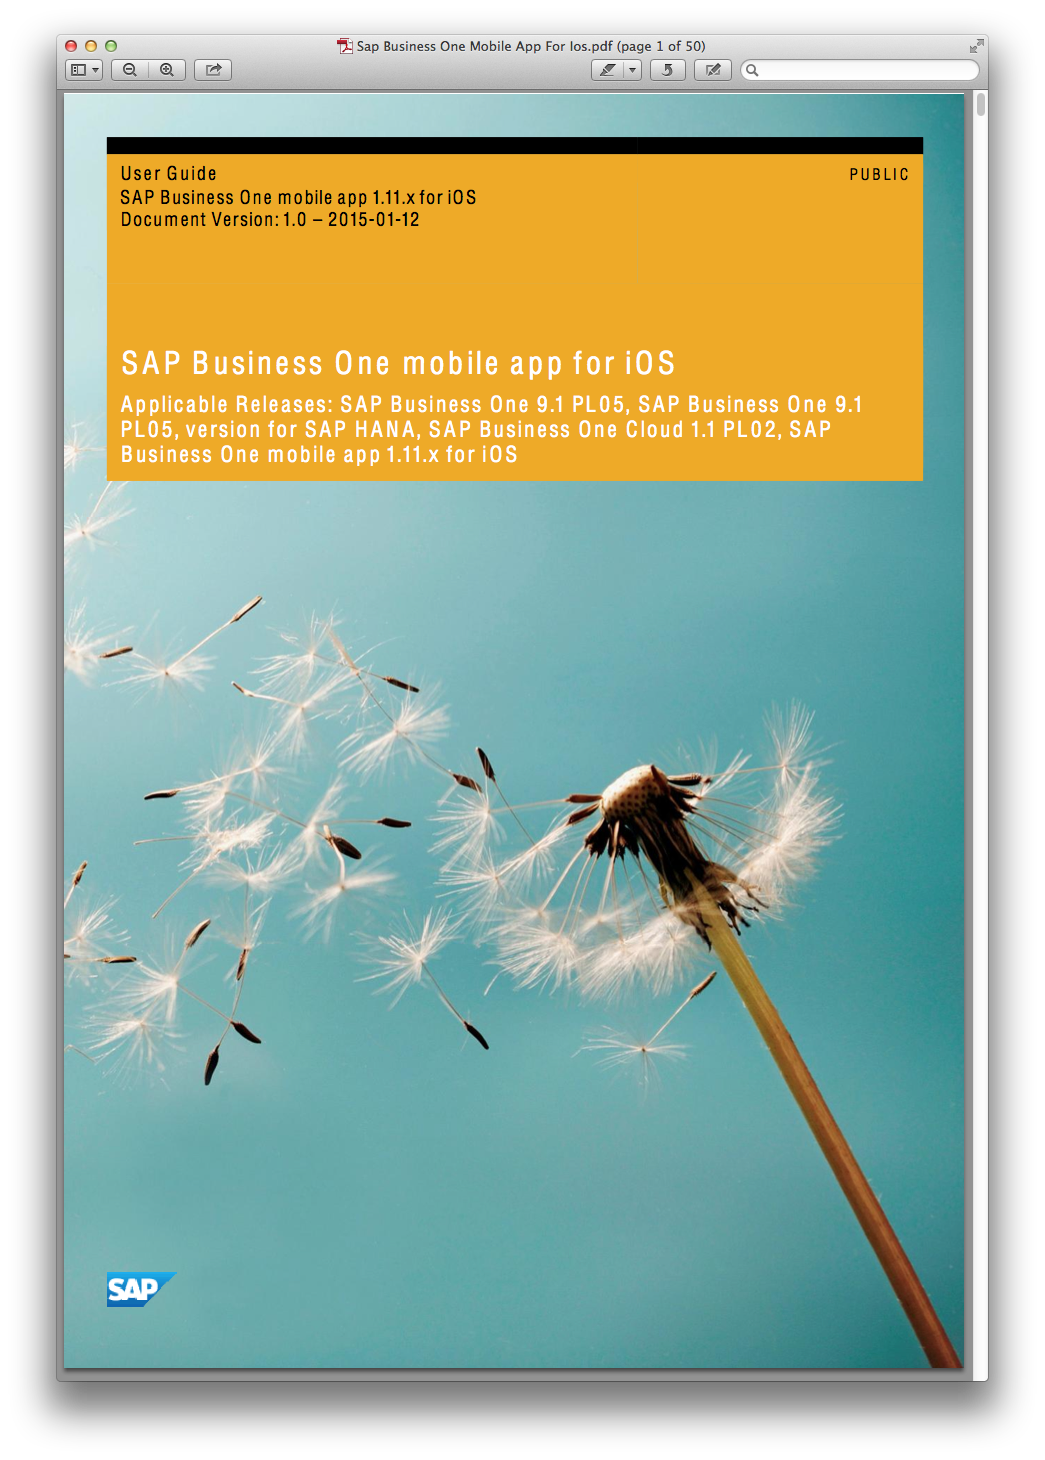 Sap Business One Mobile App For Ios.pdf.png (1045×1460)